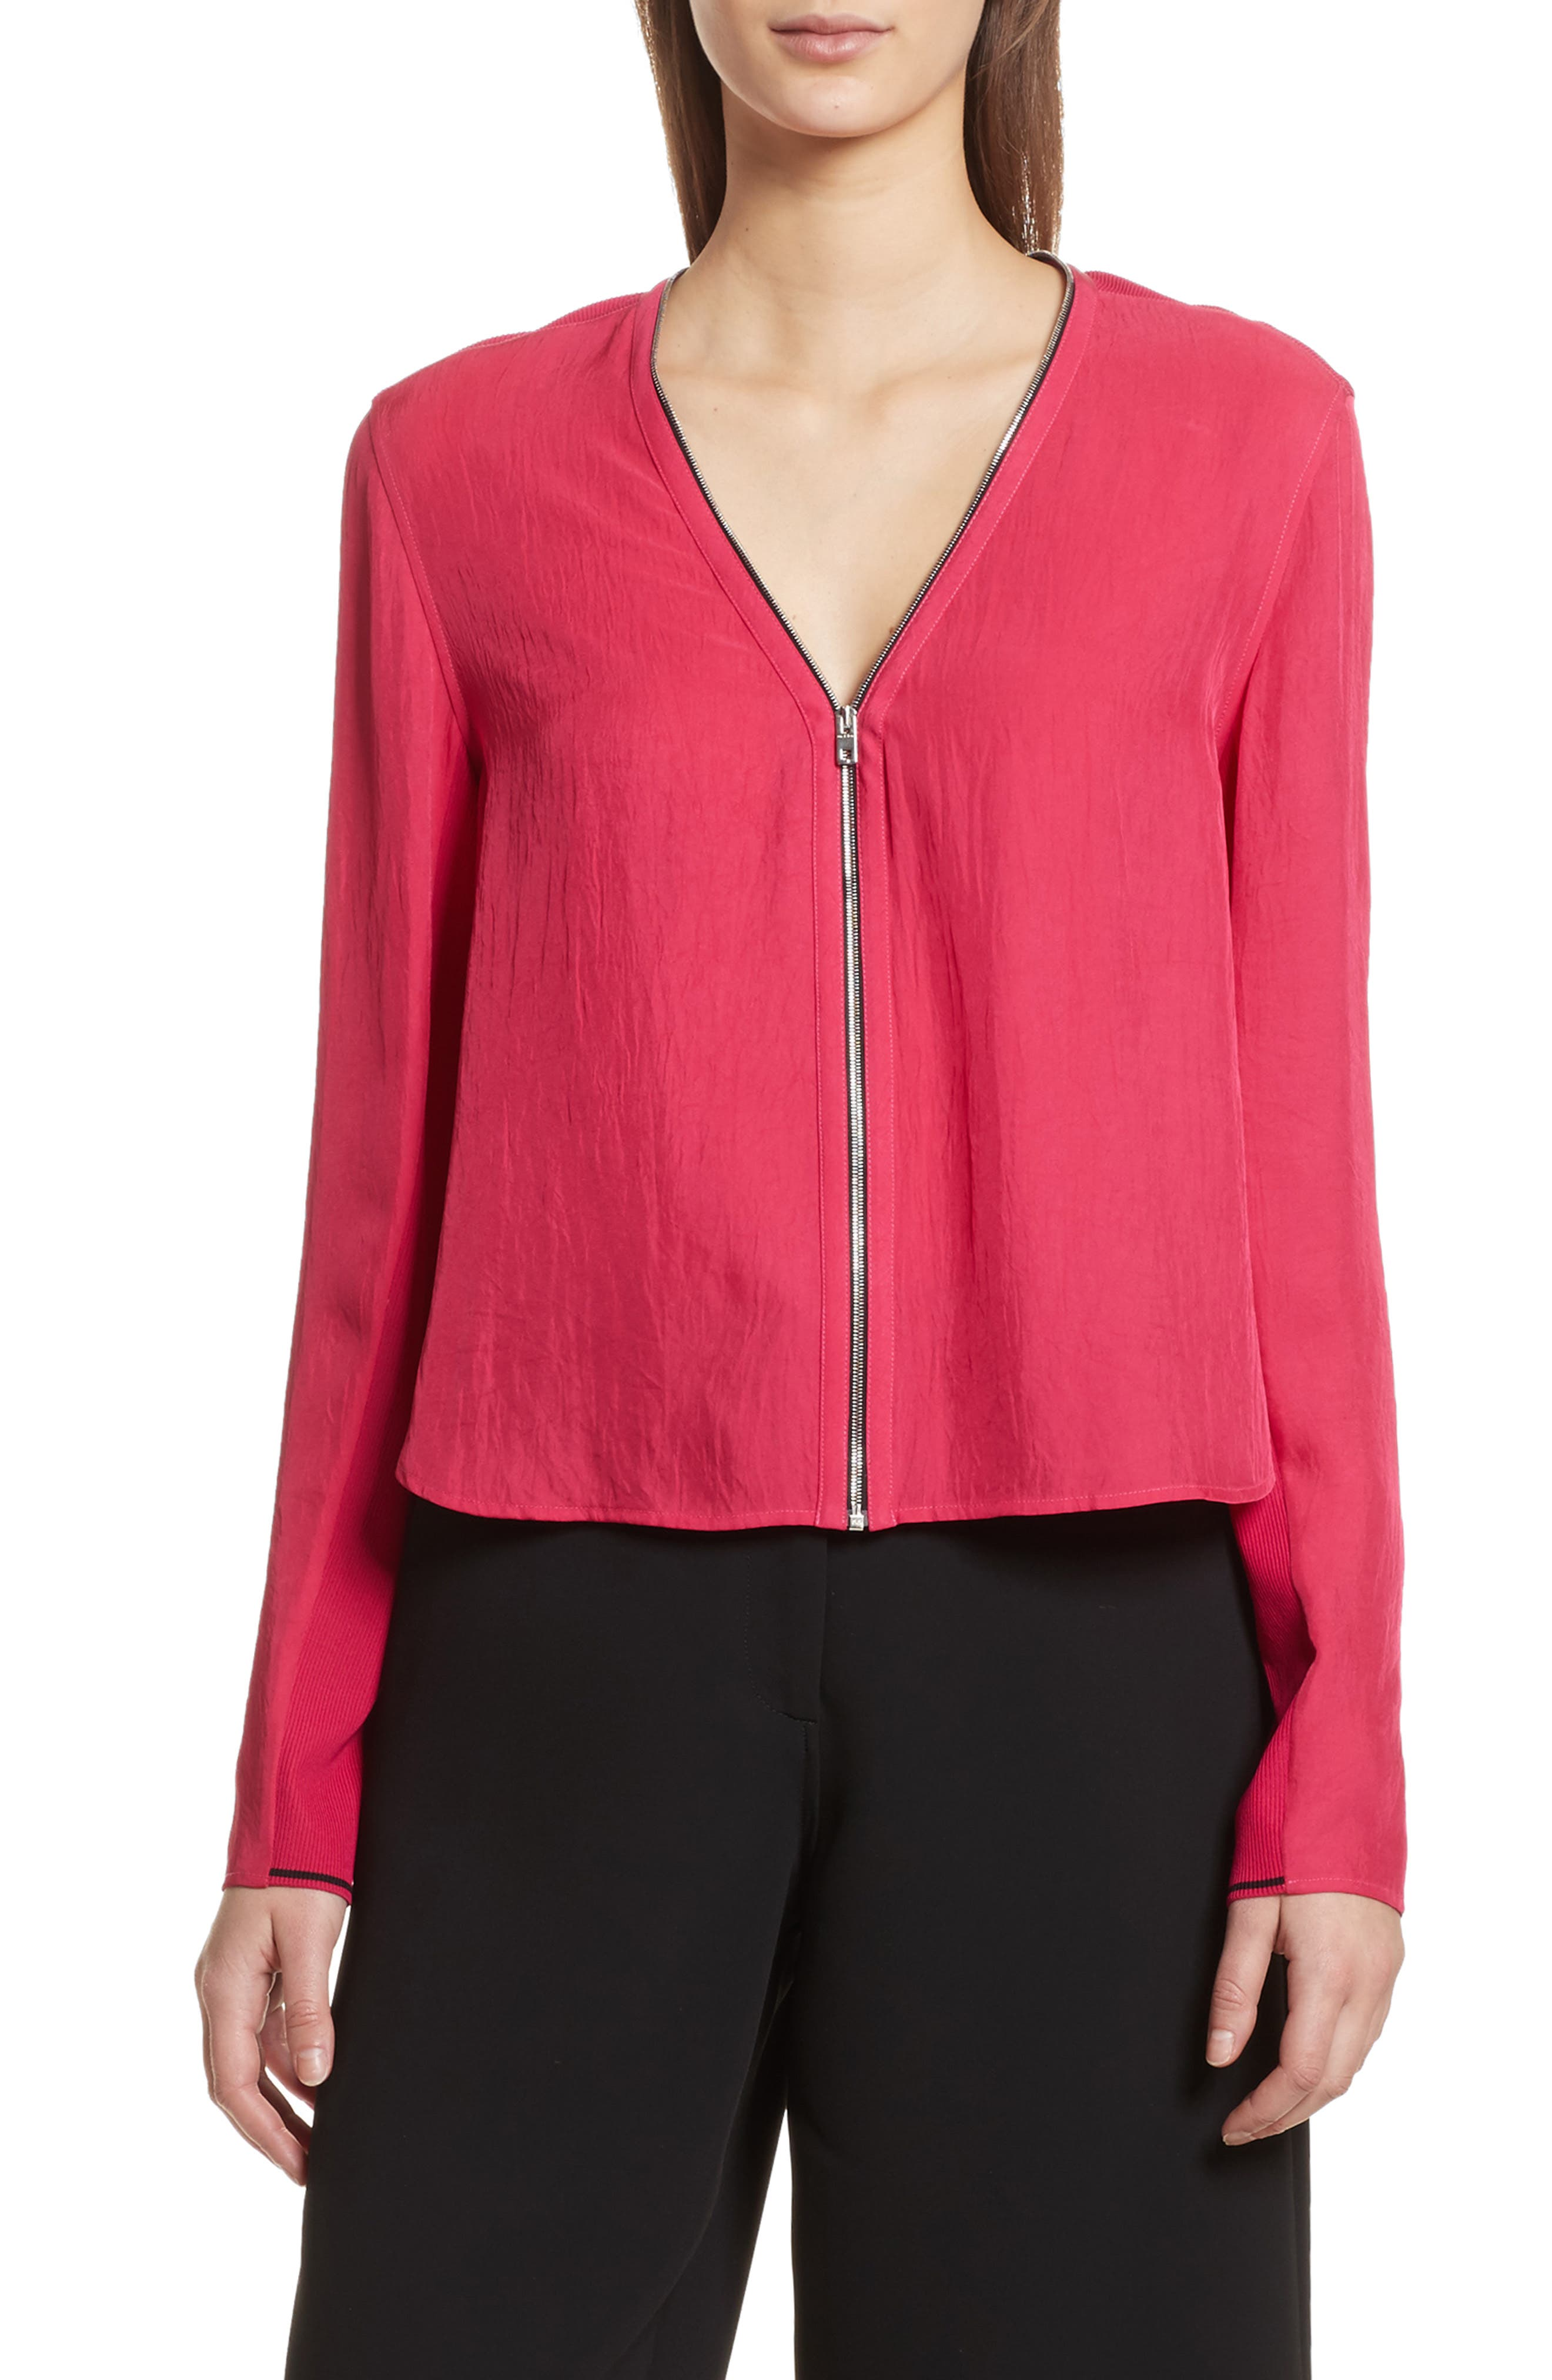 Vanessa Zip Front Blouse,                         Main,                         color, Bright Rose